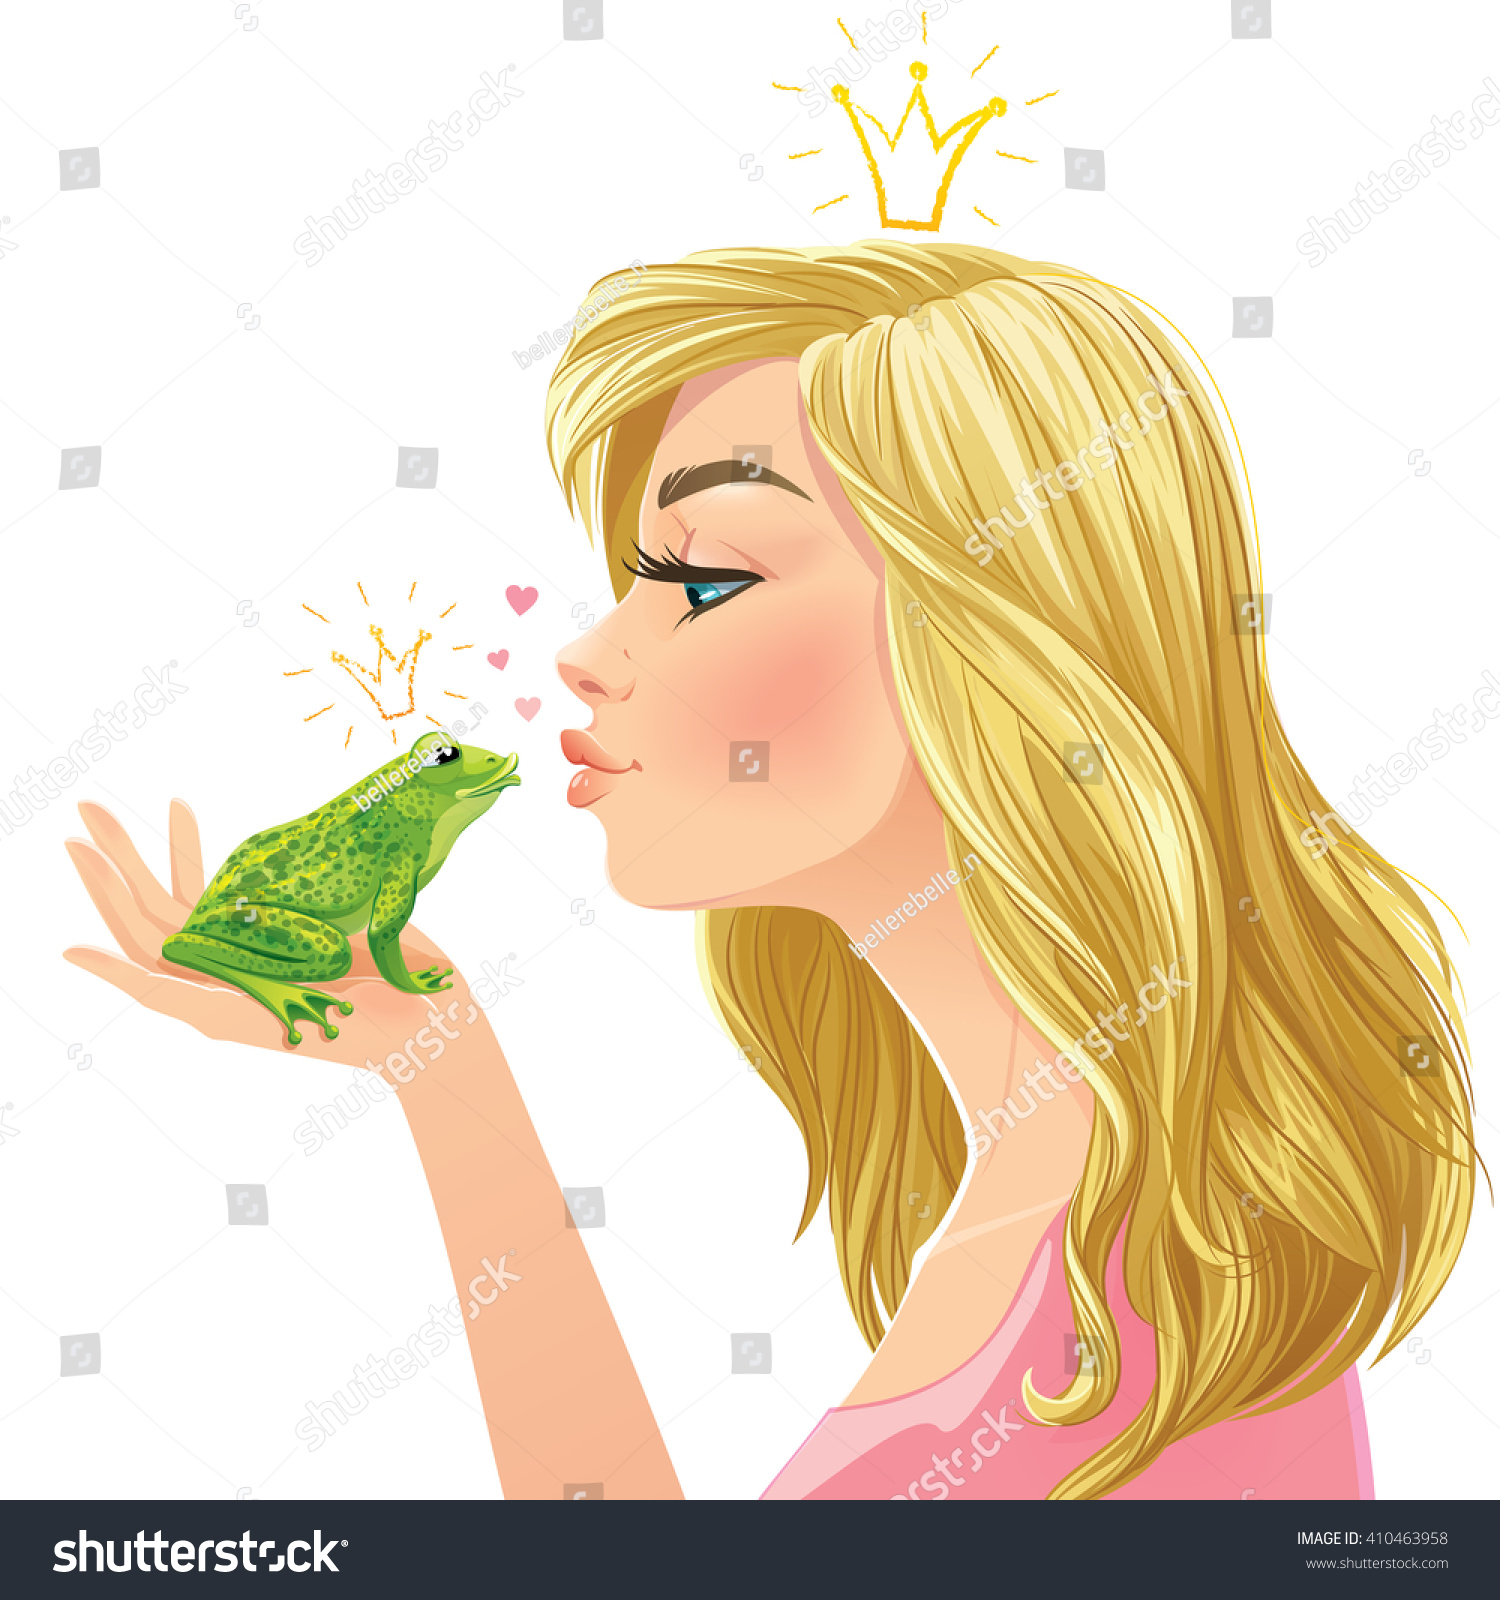 Young beautiful lady kisses a green frog isolated on white background